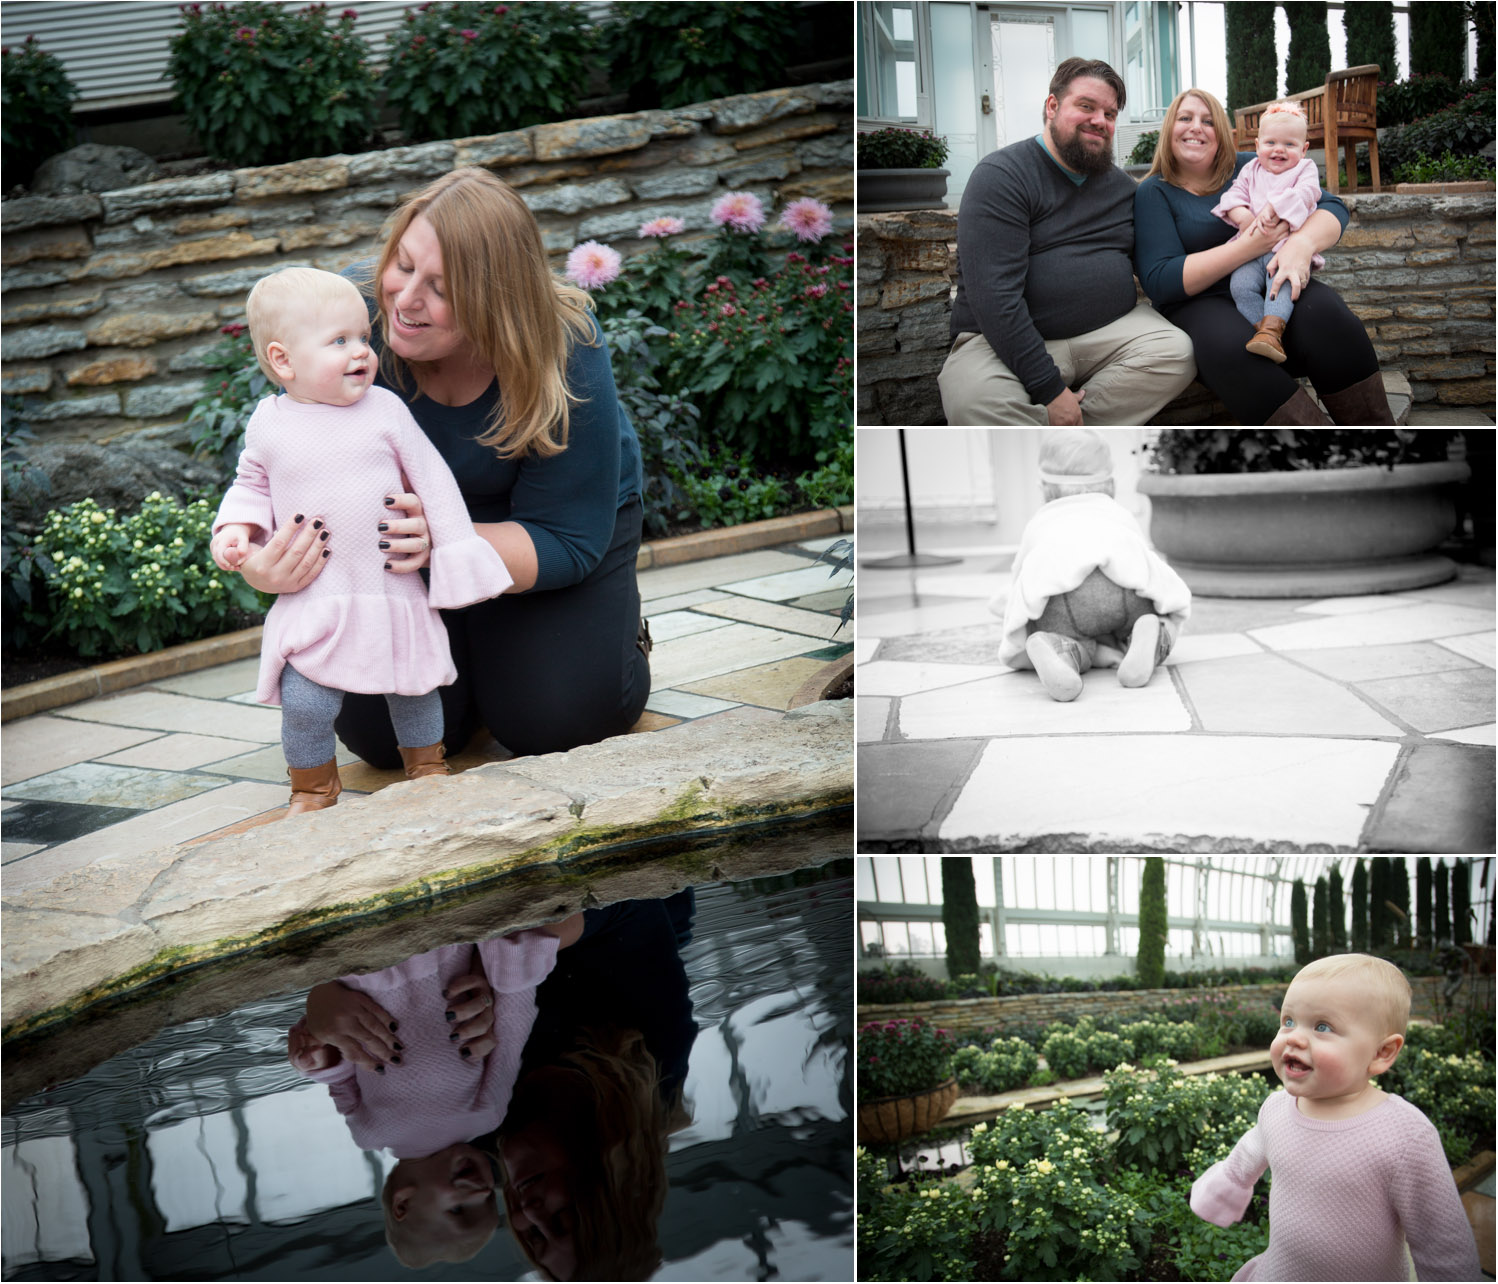 03-como-conservatory-family-photography-session-one-year-old-busy-happy-girl-mahonen-photography.jpg